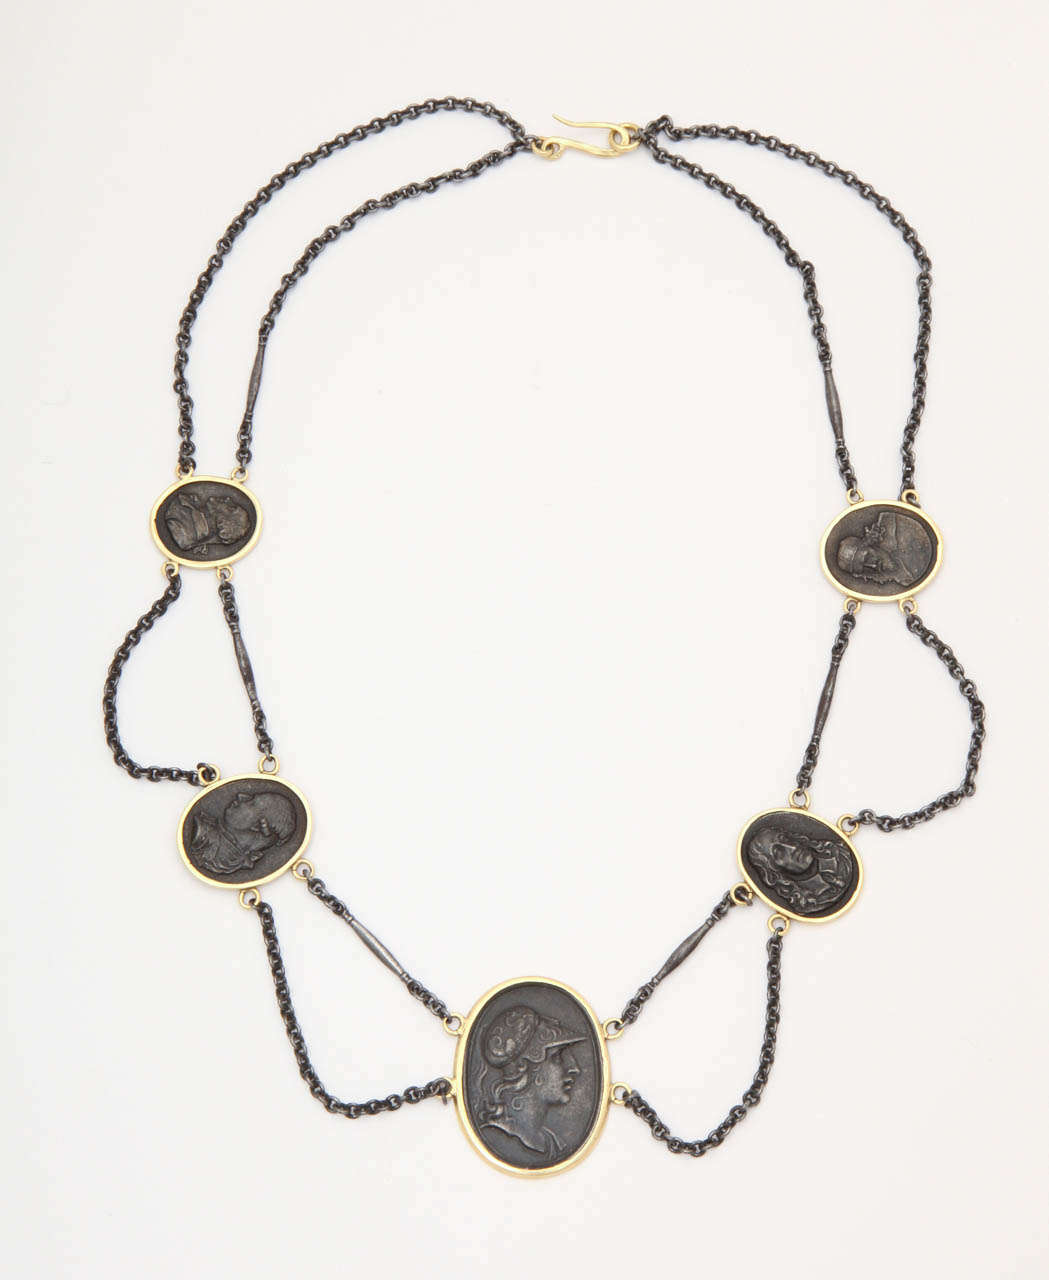 The fine, rare pairing of Berlin Iron and gold combine in this extraordinary garlanded necklace. Five neo -classical  iron portraits of historic figures are framed and set in gold. The portraits are crisp and detailed. Iron chain forms garlands